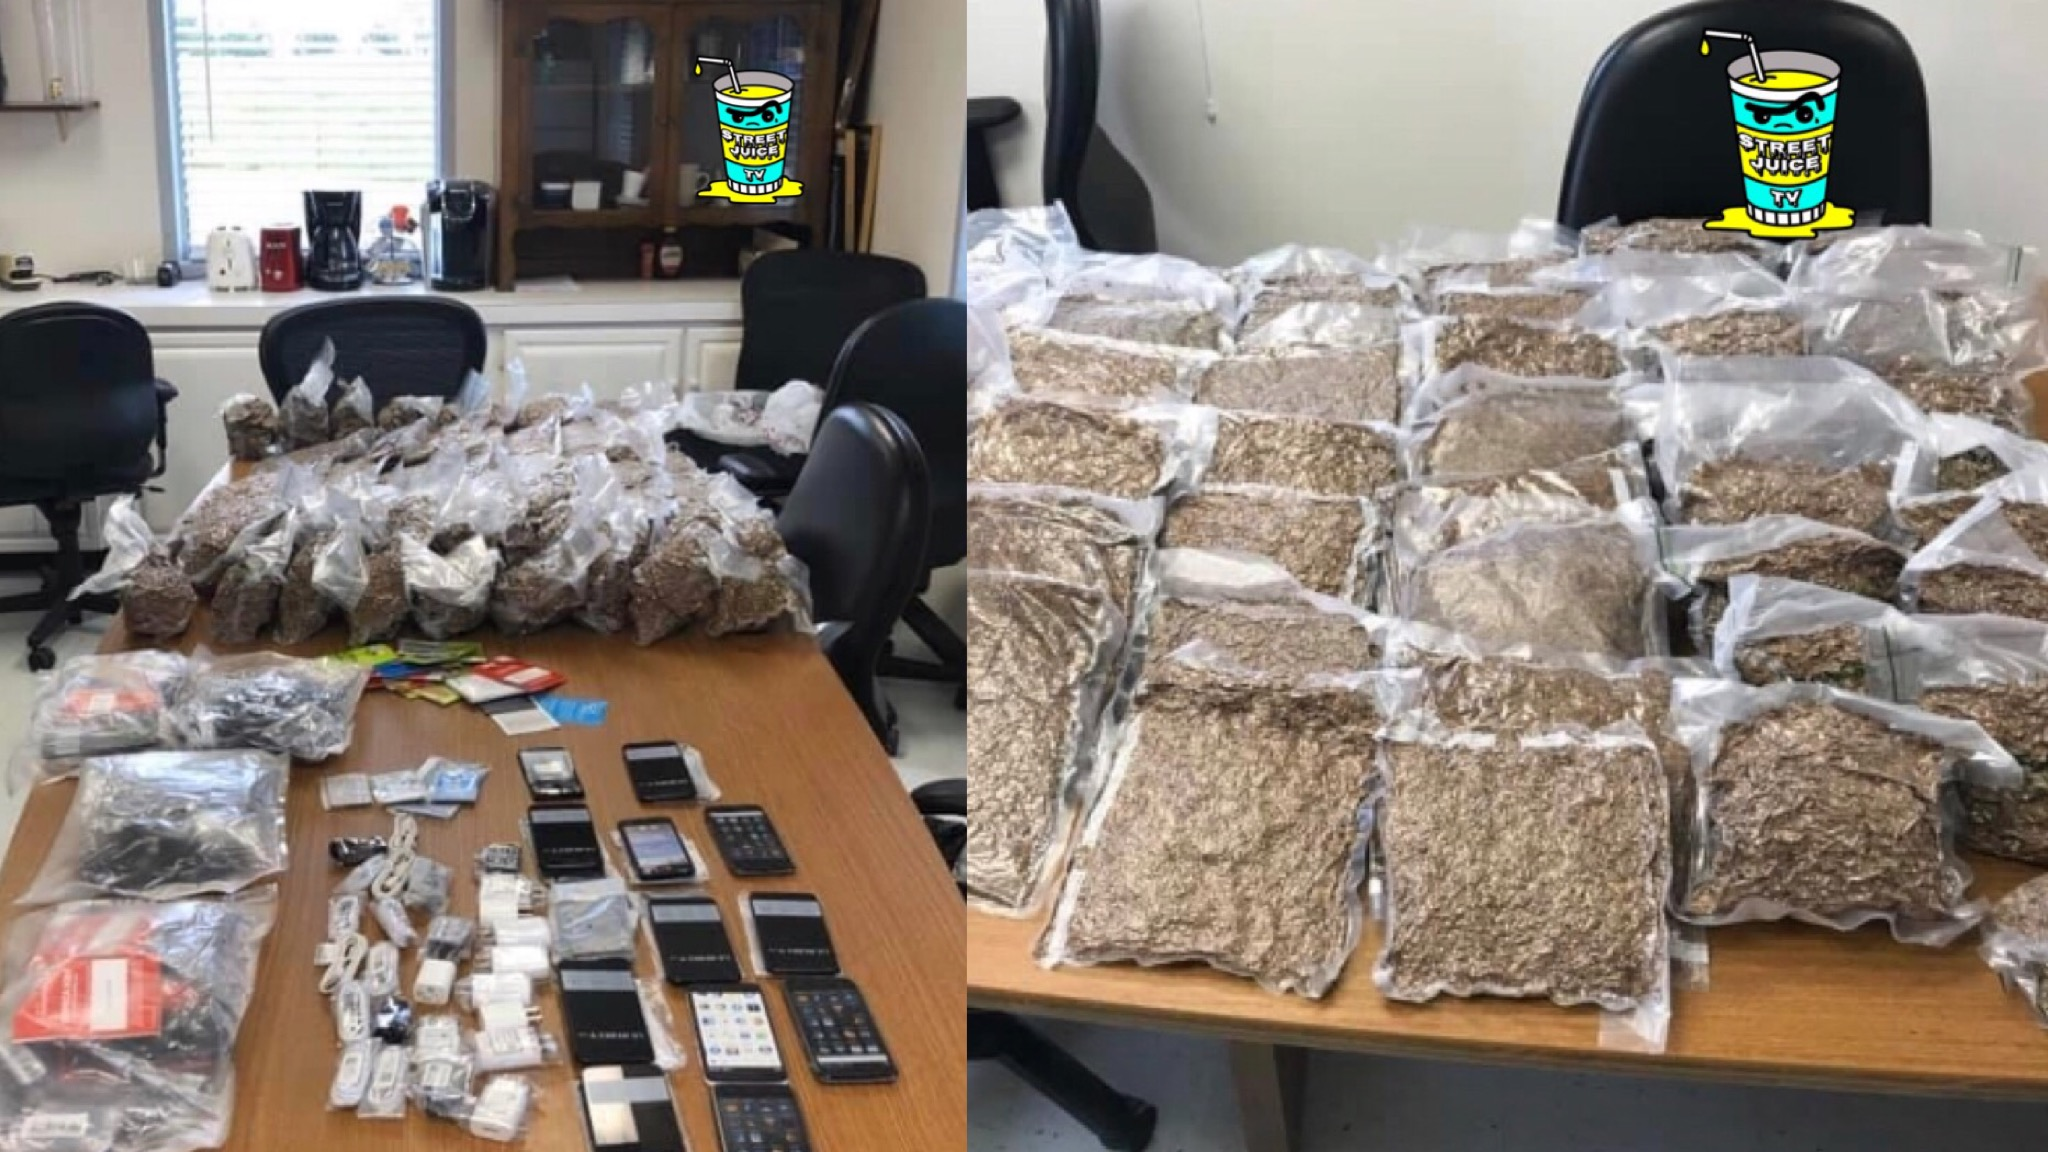 South Carolina Prison Guards Seize 157 Pounds Of Tobacco And 37 Phones With Chargers In Contraband